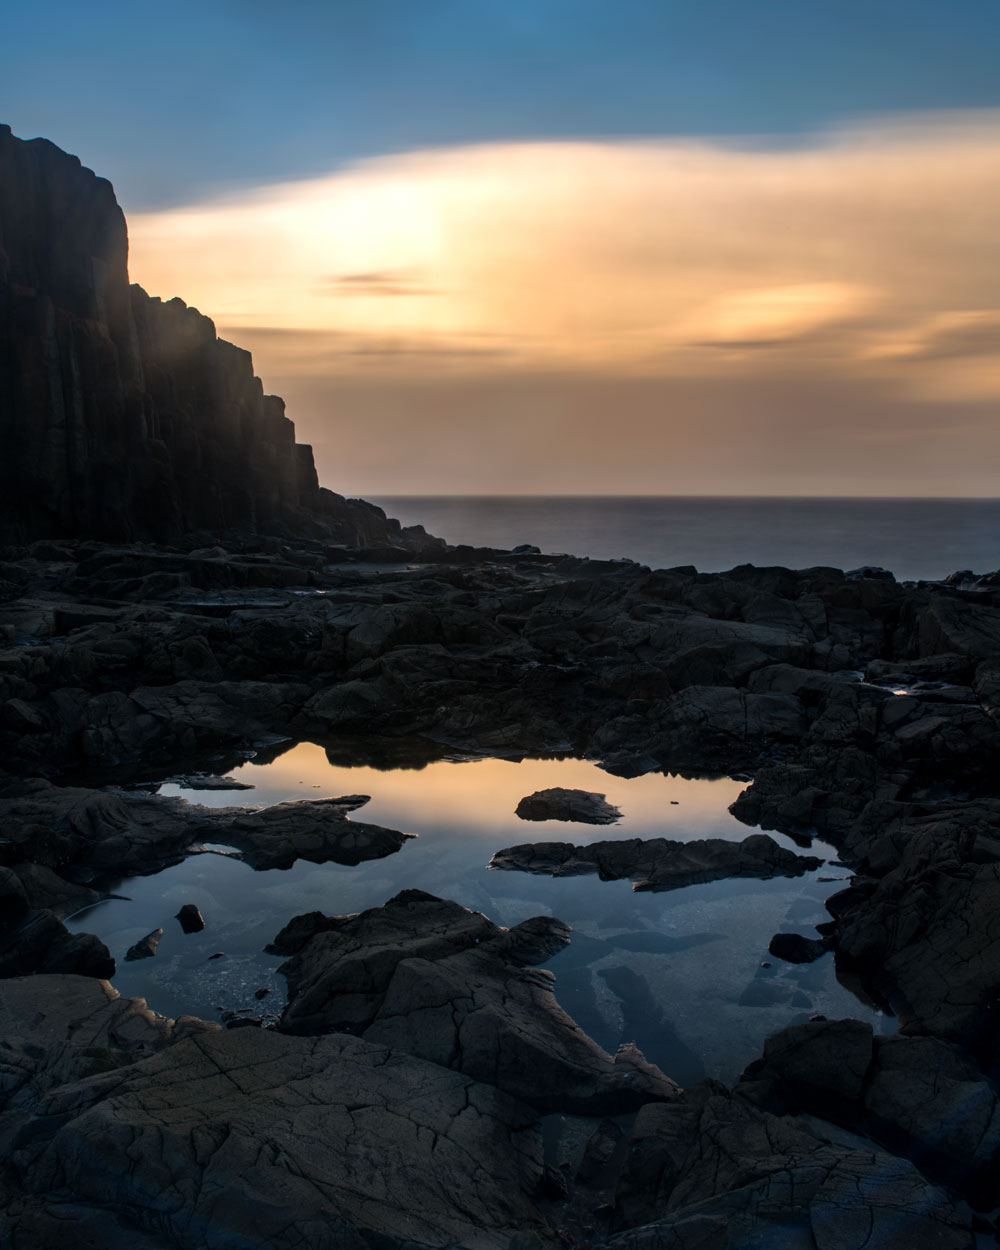 The eastern sky catches the last rays of sunlight at Bombo Quarry, NSW